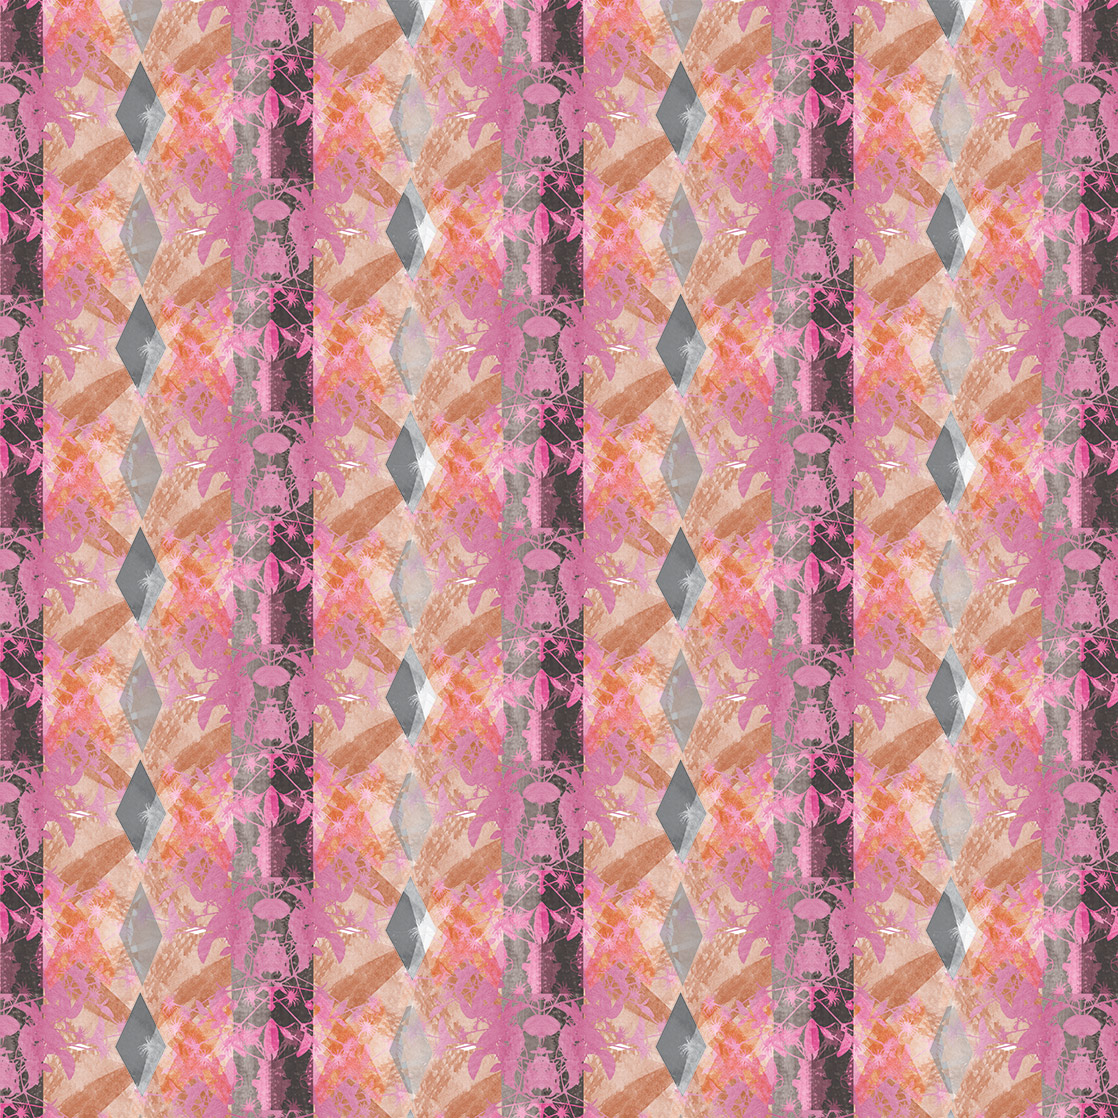 Kaleidoscope – Pattern 4